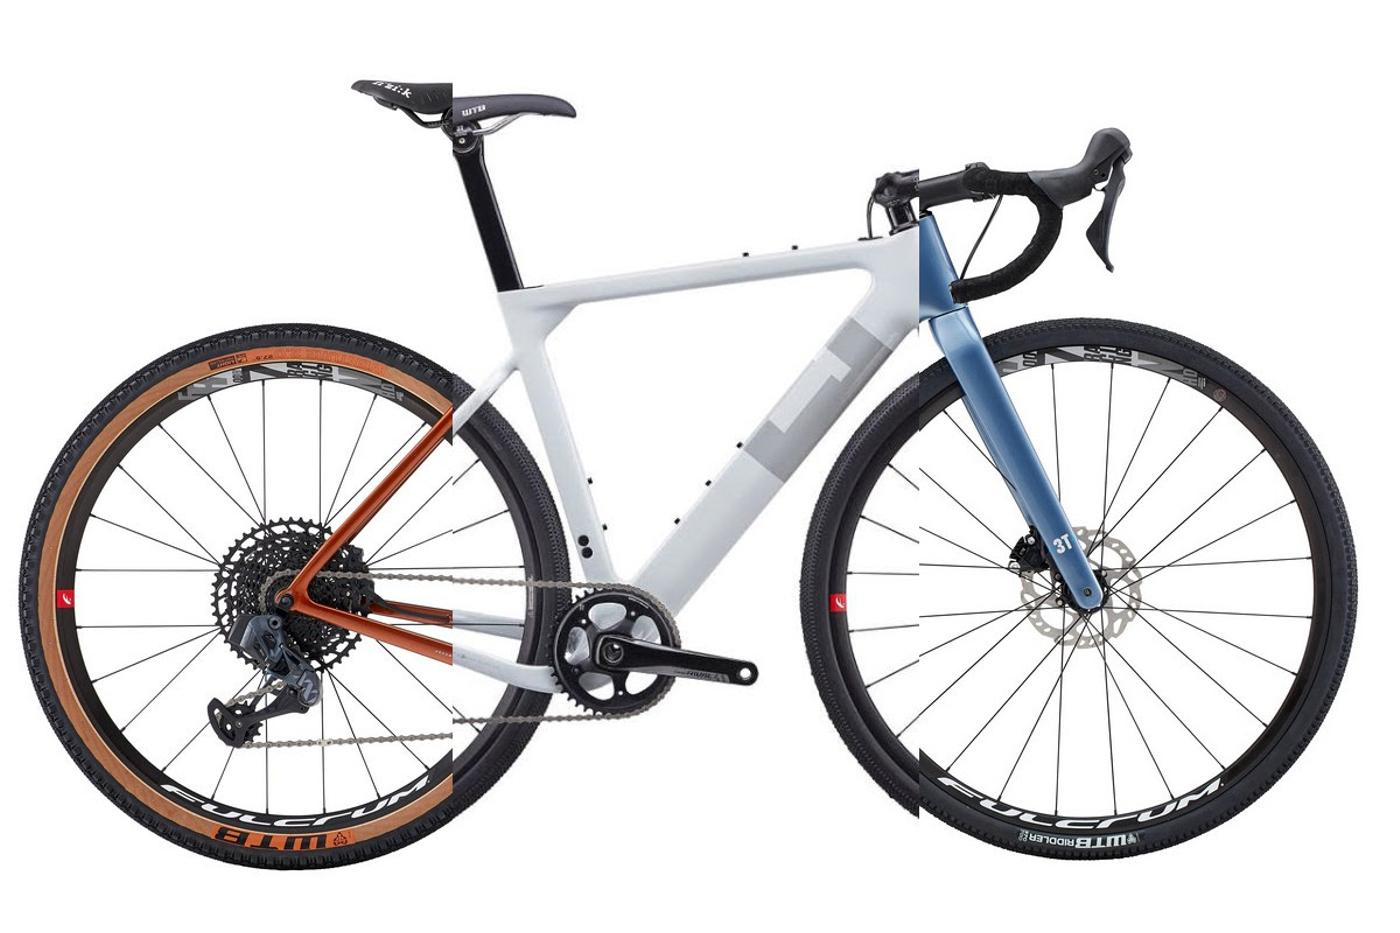 3T Exploro Rolls Out A Rival, GRX, AXS Mullet Options